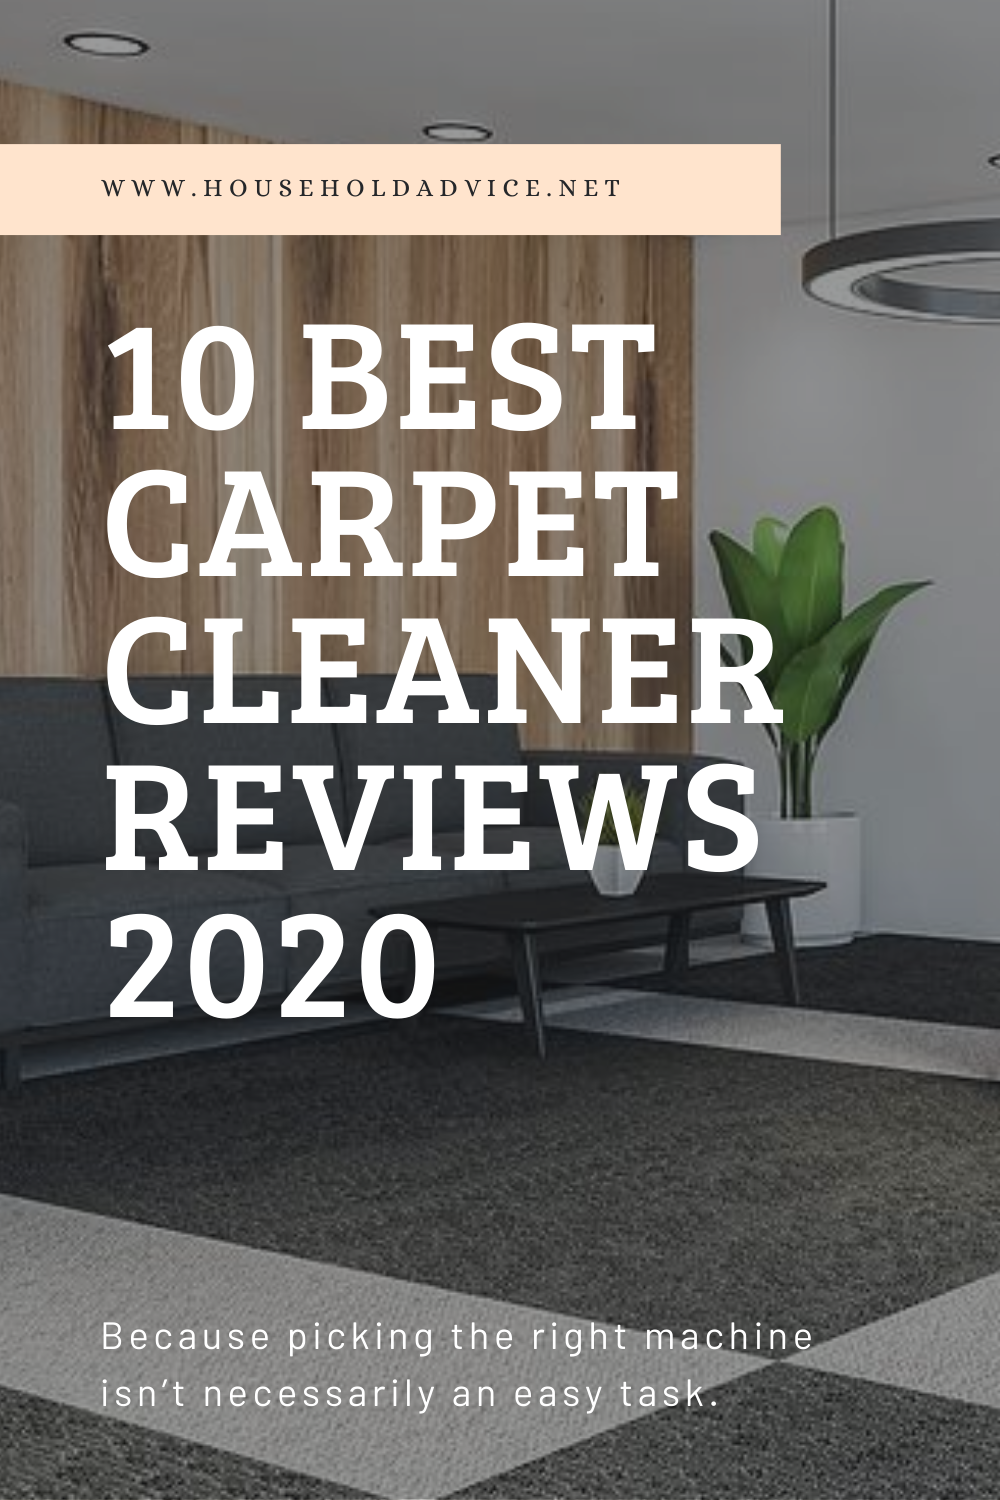 Top 10 Best Carpet Cleaner Reviews 2020 In 2020 Carpet Cleaners Best Carpet Green Carpet Cleaning